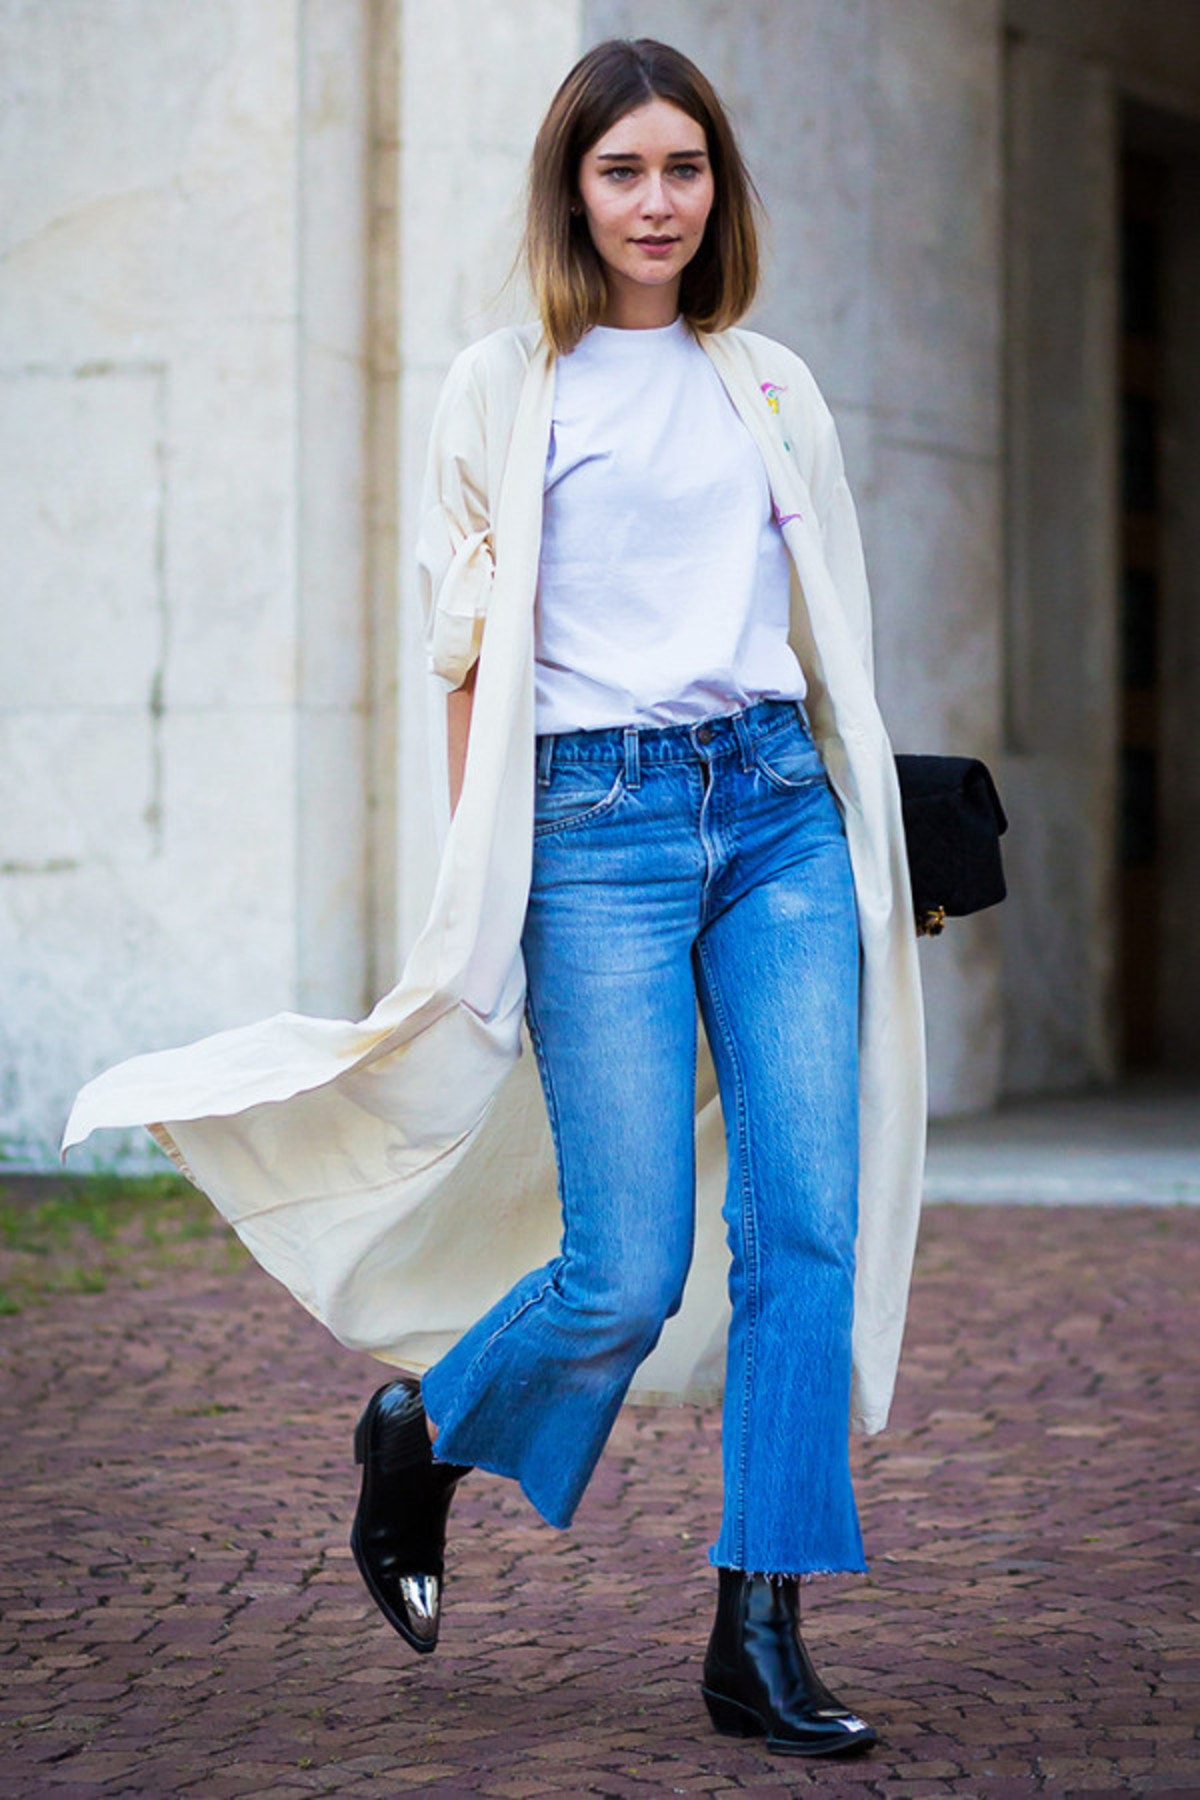 the-3-piece-stylish-outfit-formula-that-always-works-1945039-1476912248.600x0c